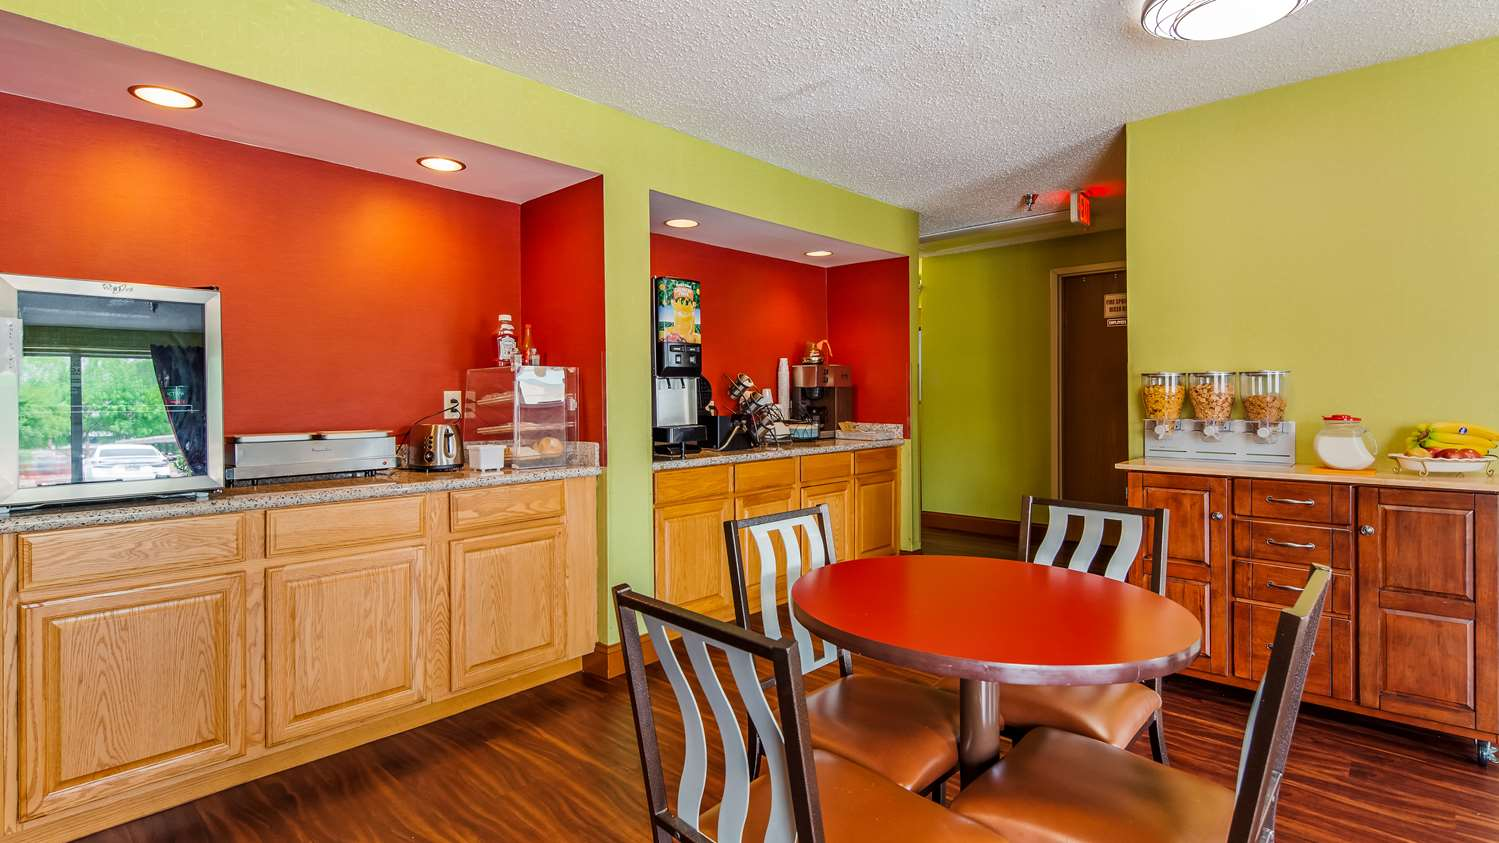 Restaurant - SureStay Plus Hotel Hamilton Place Mall Chattanooga